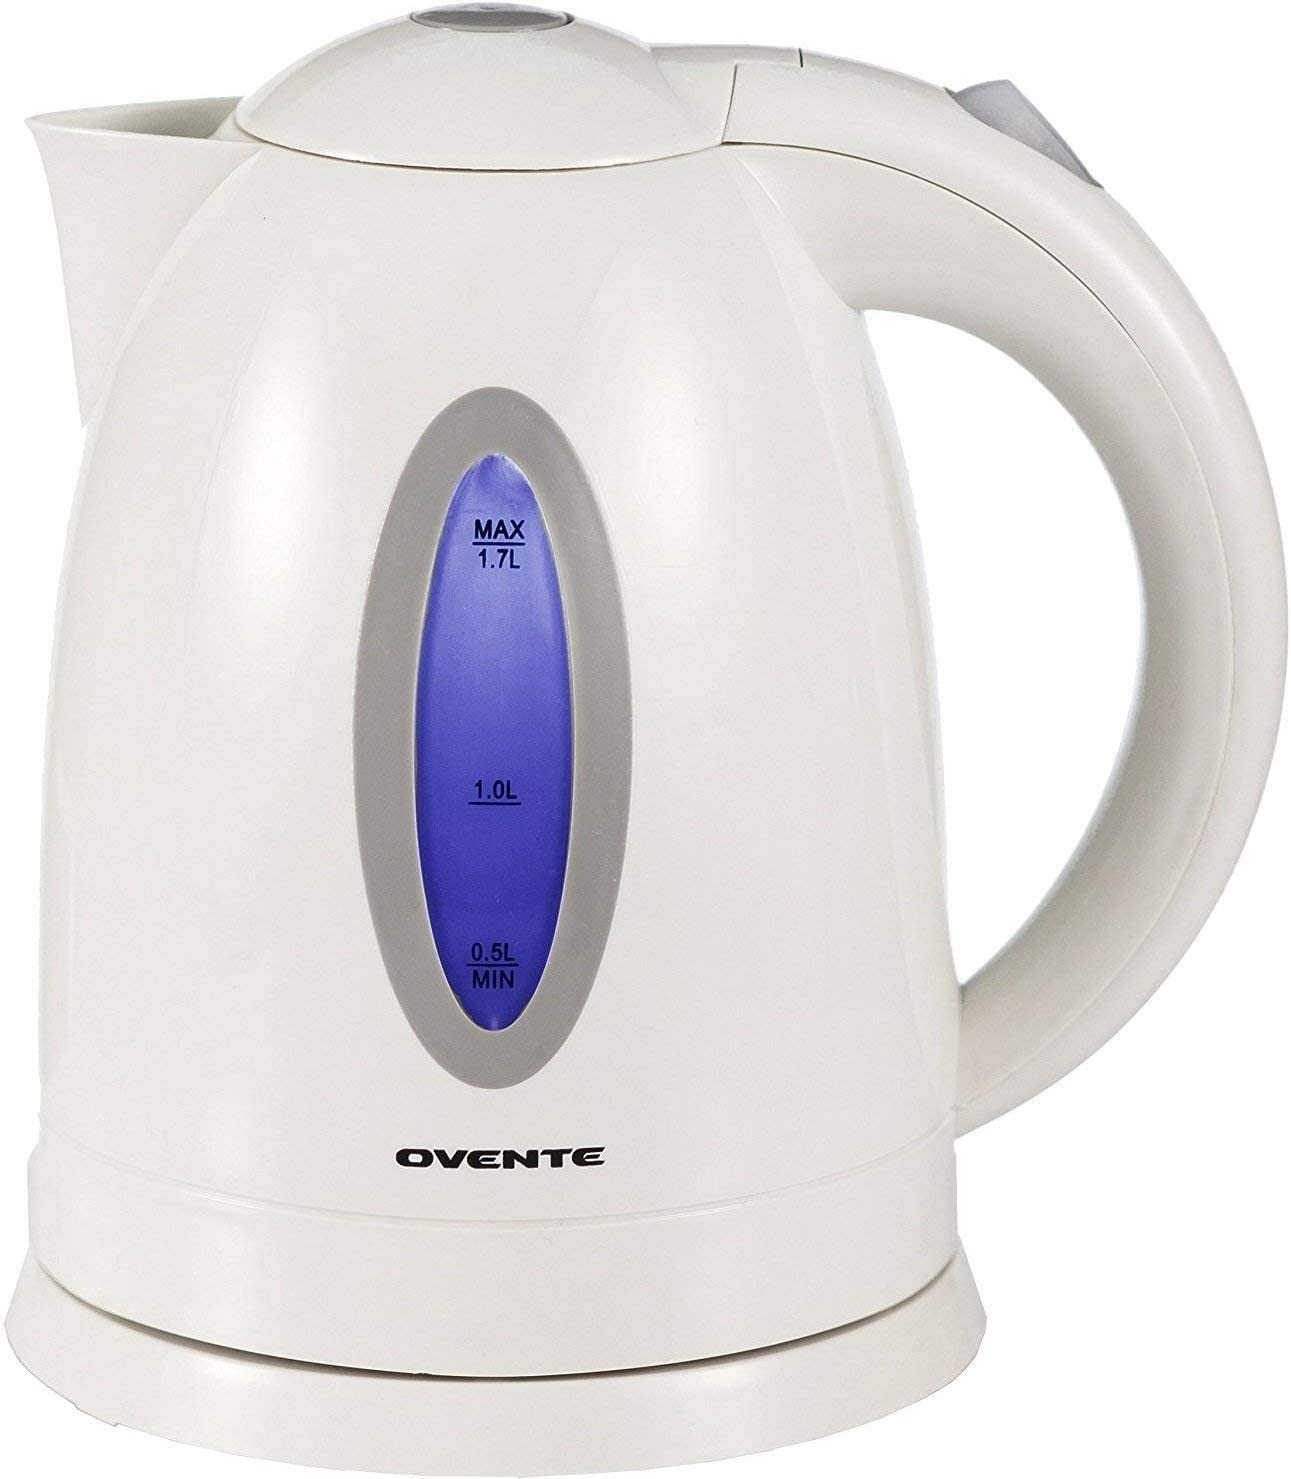 Ovente Electric Hot Water Kettle 1.7 Liter with LED Light, 1100 Watt BPA-Free Portable Tea Maker Fast Heating Element with Auto Shut-Off and Boil Dry Protection, Brew Coffee & Beverage, White KP72W: Electric Water Kettle: Kitchen & Dining